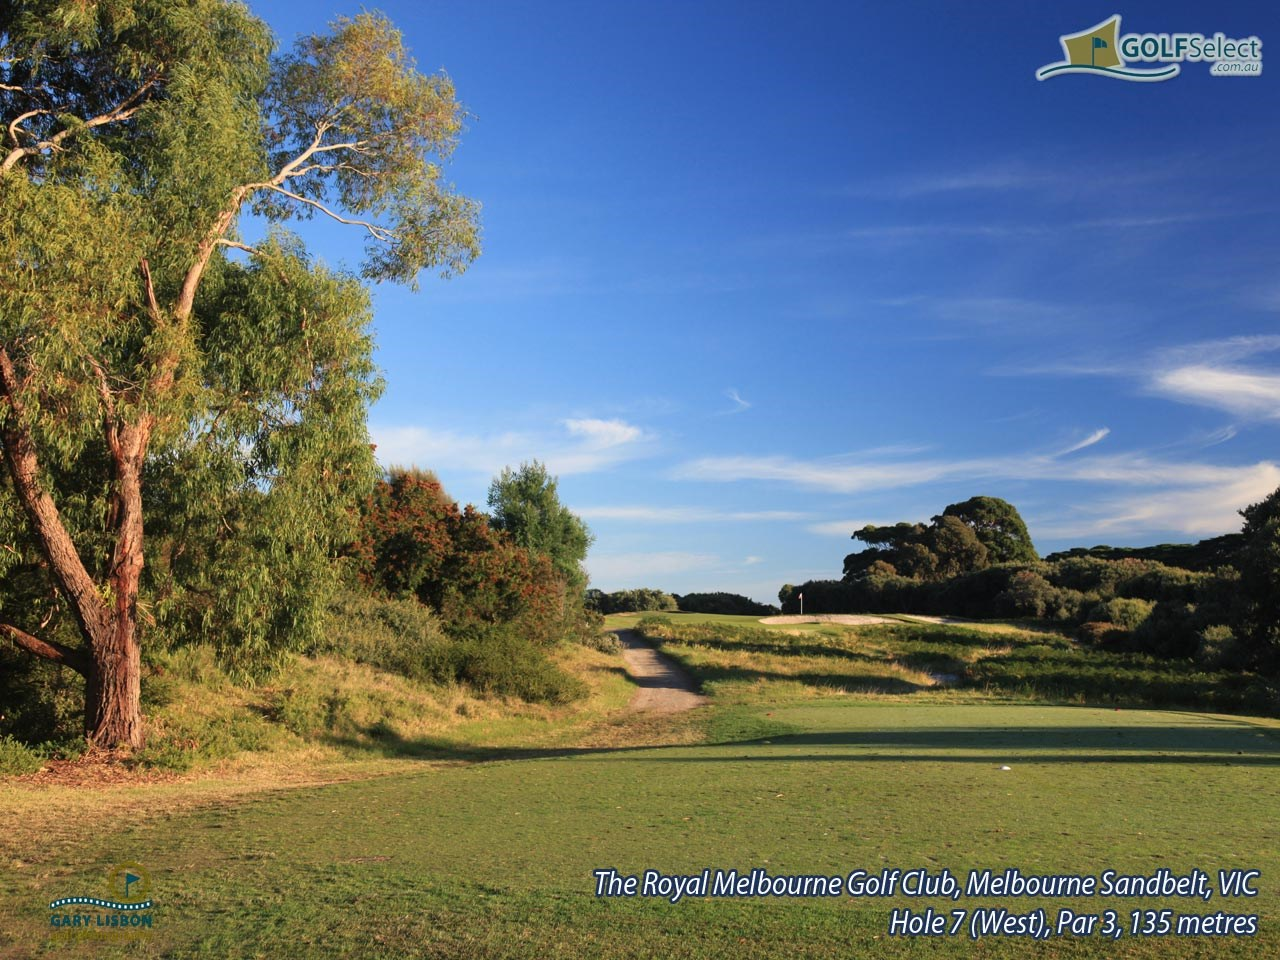 The Royal Melbourne Golf Club (West Course) Hole 7(West), Par 3, 135 metres